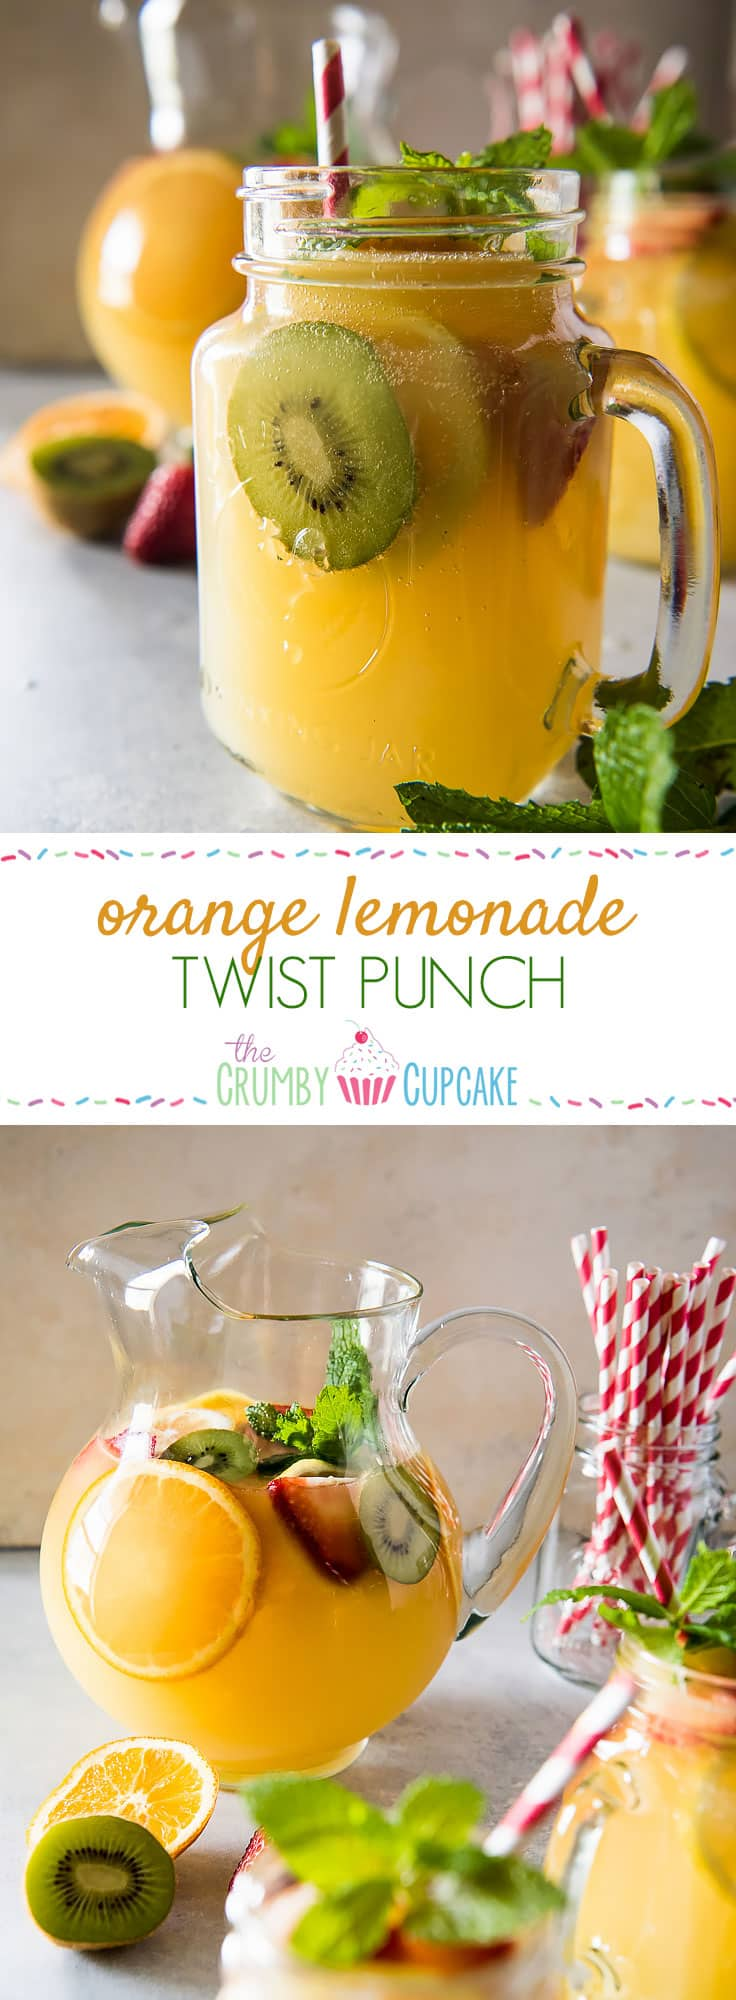 Cool down these hot summer days with a pitcher of Orange Lemonade Twist Punch! Fizzy, spicy, fruity - this refreshing drink is sure to wow your friends & family!